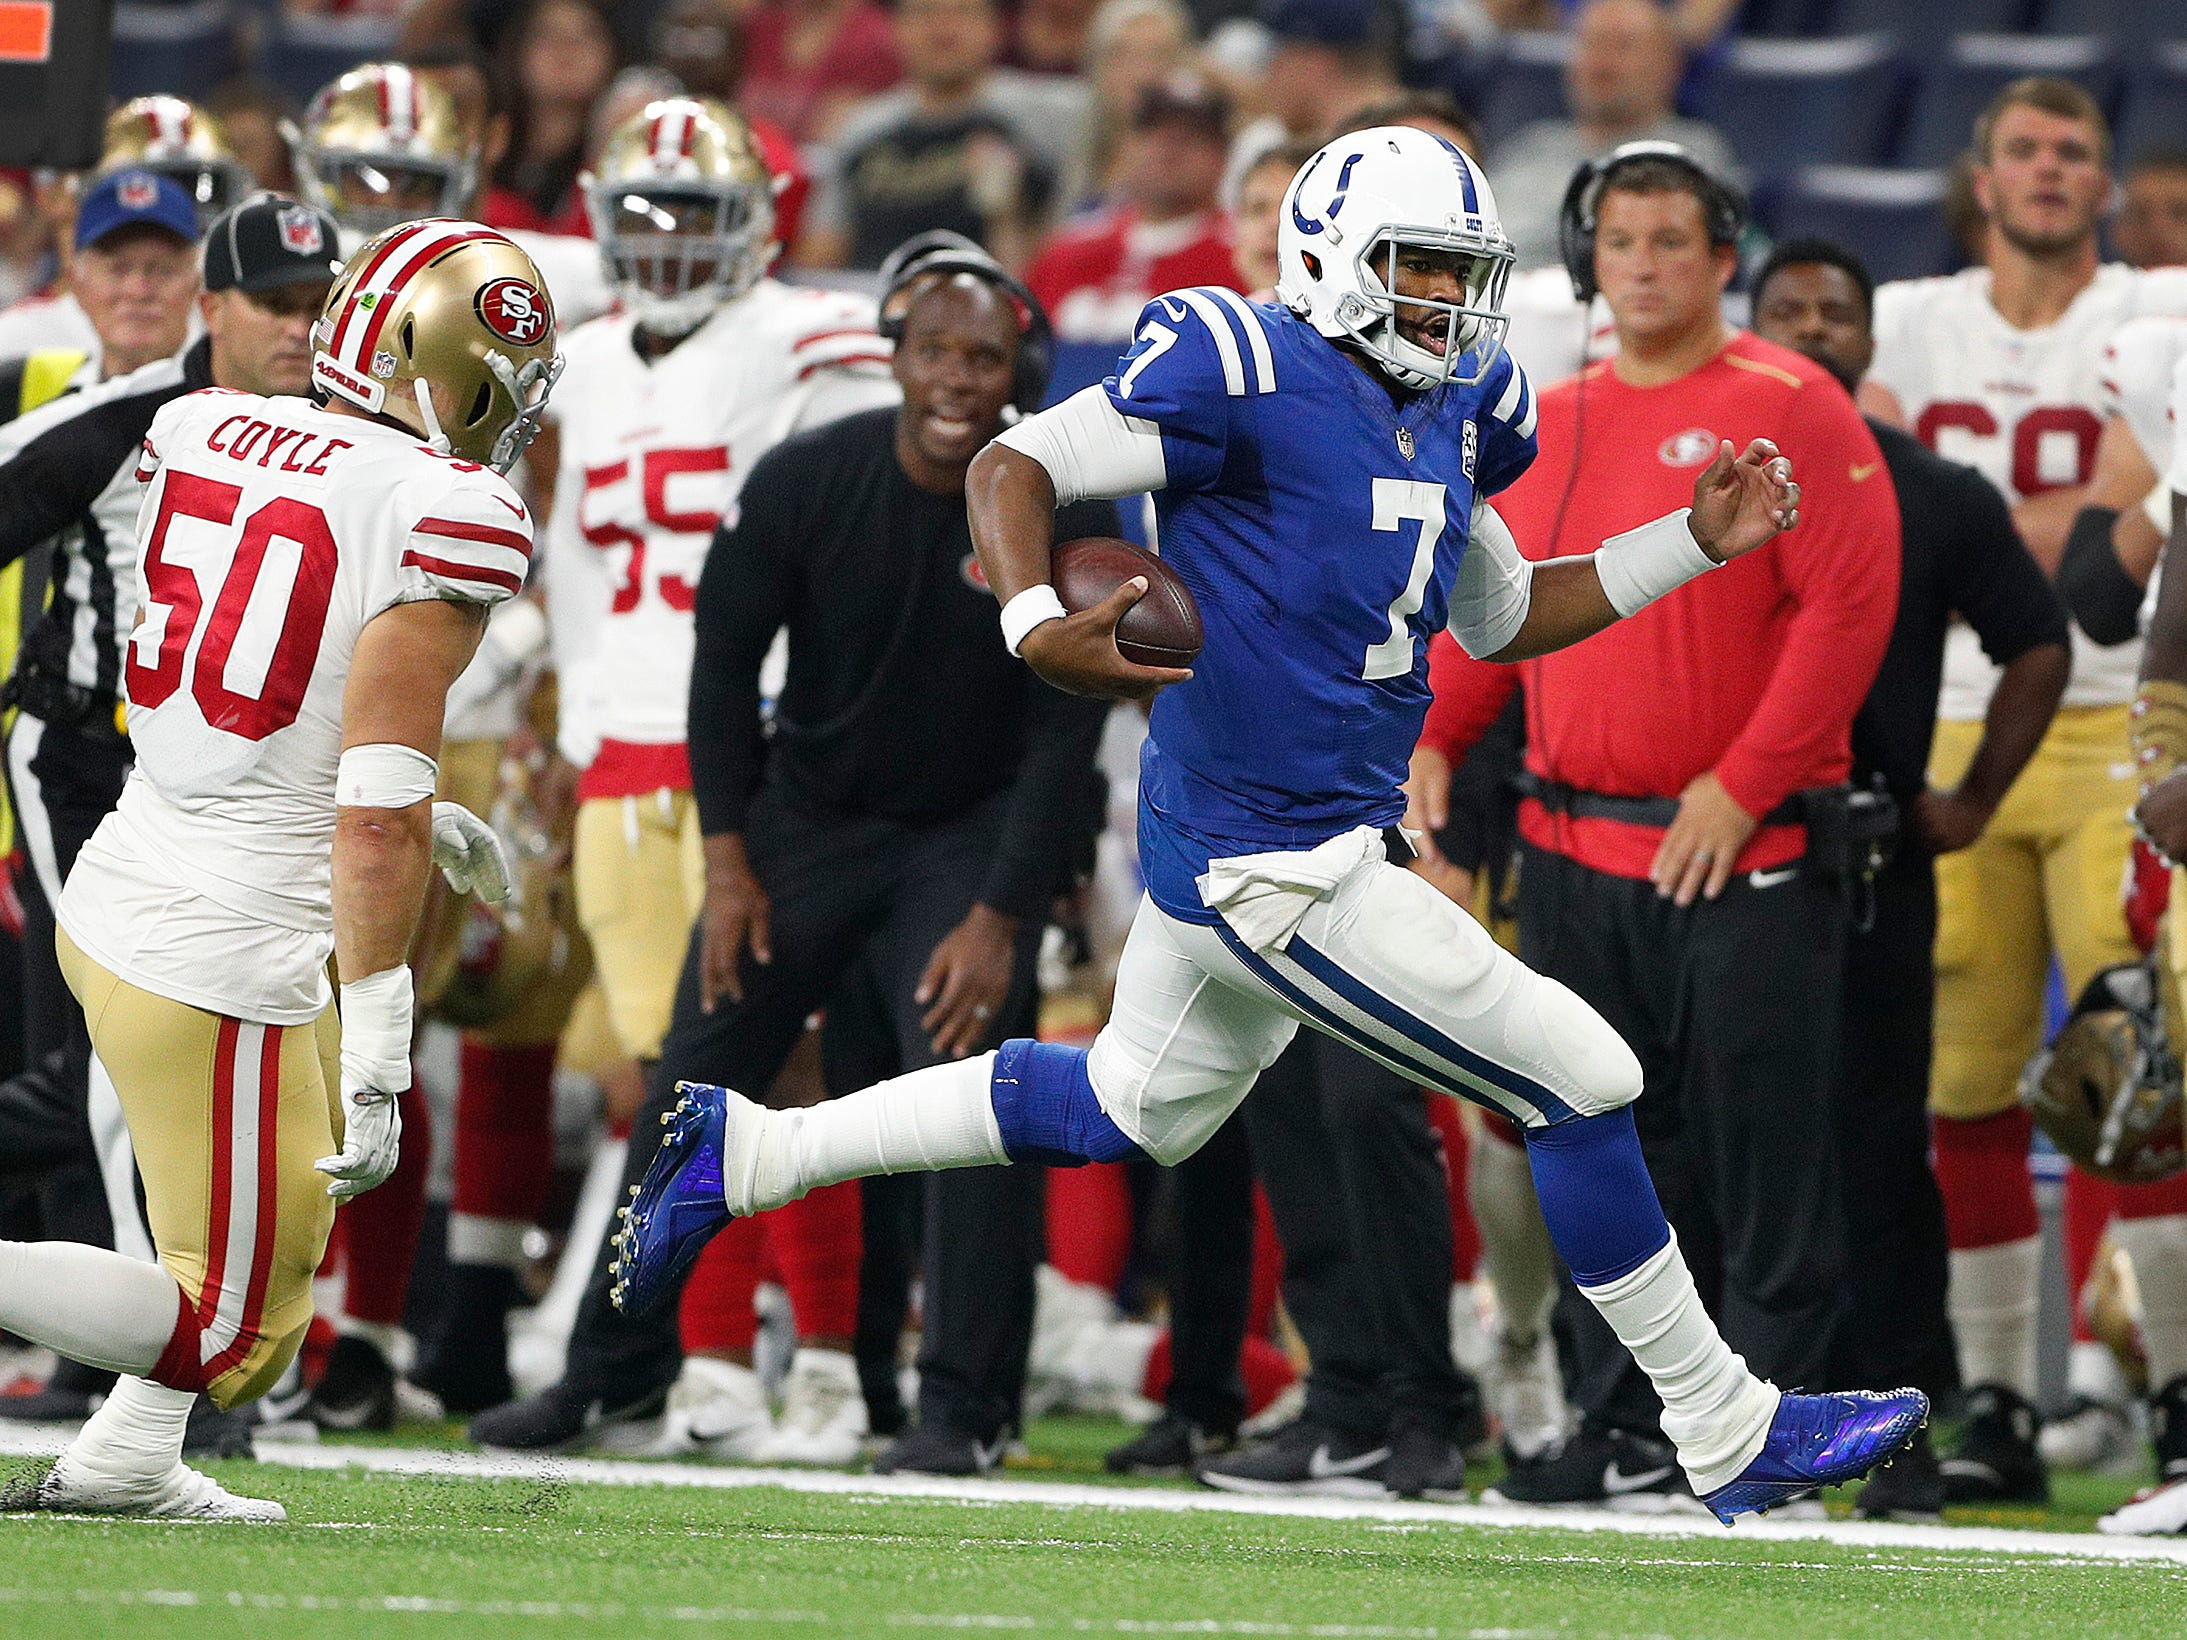 Indianapolis Colts quarterback Jacoby Brissett (7) runs away from San Francisco 49ers linebacker Brock Coyle (50) in the second half of their preseason football game at Lucas Oil Stadium Saturday, August 25, 2018. The Colts defeated the 49ers 23-17.